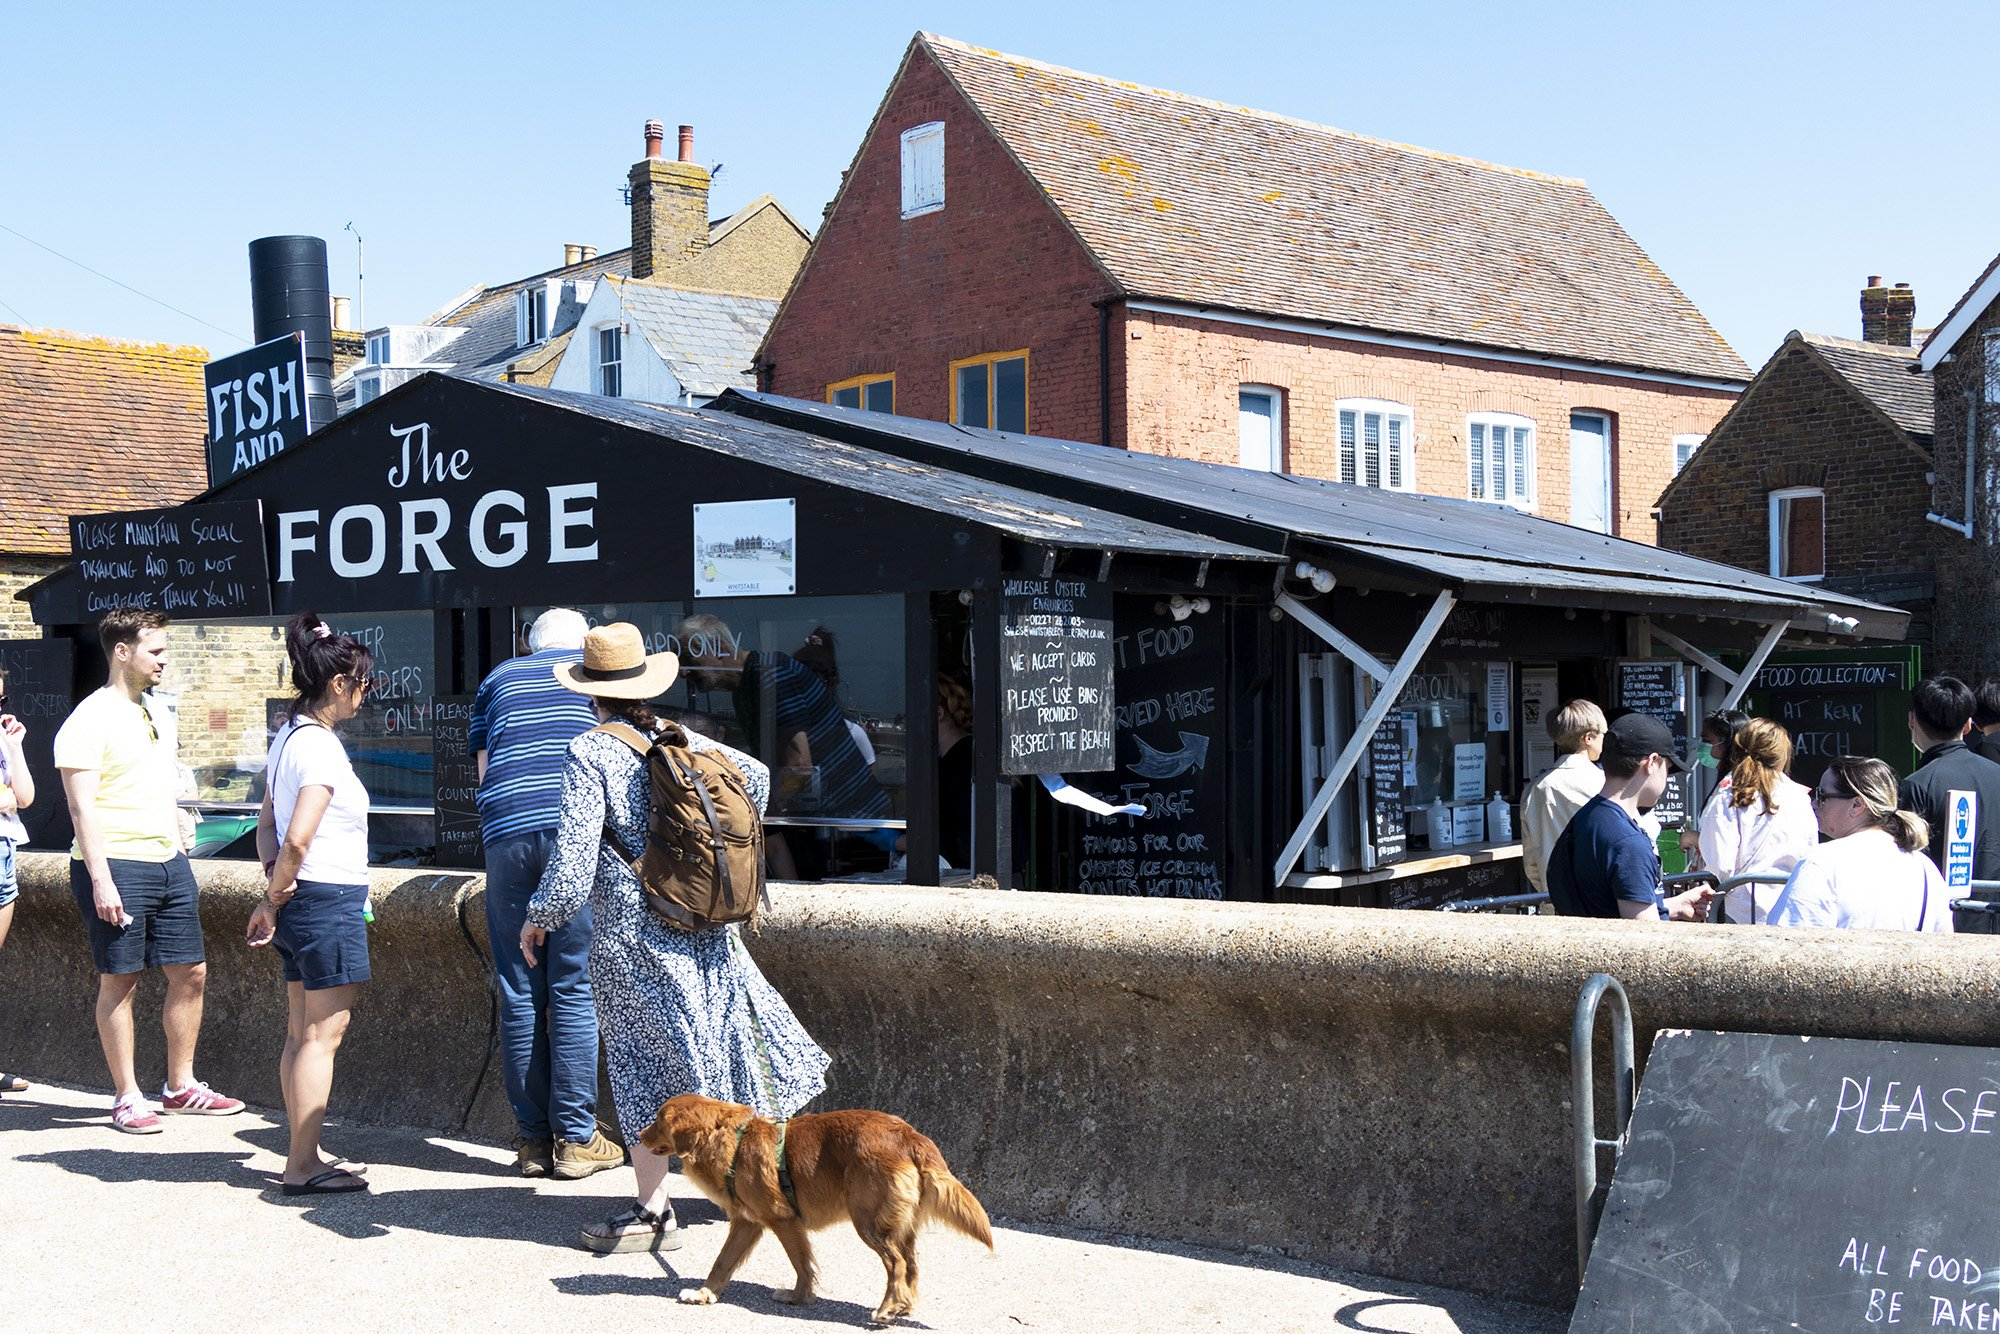 The Forge, Whitstable